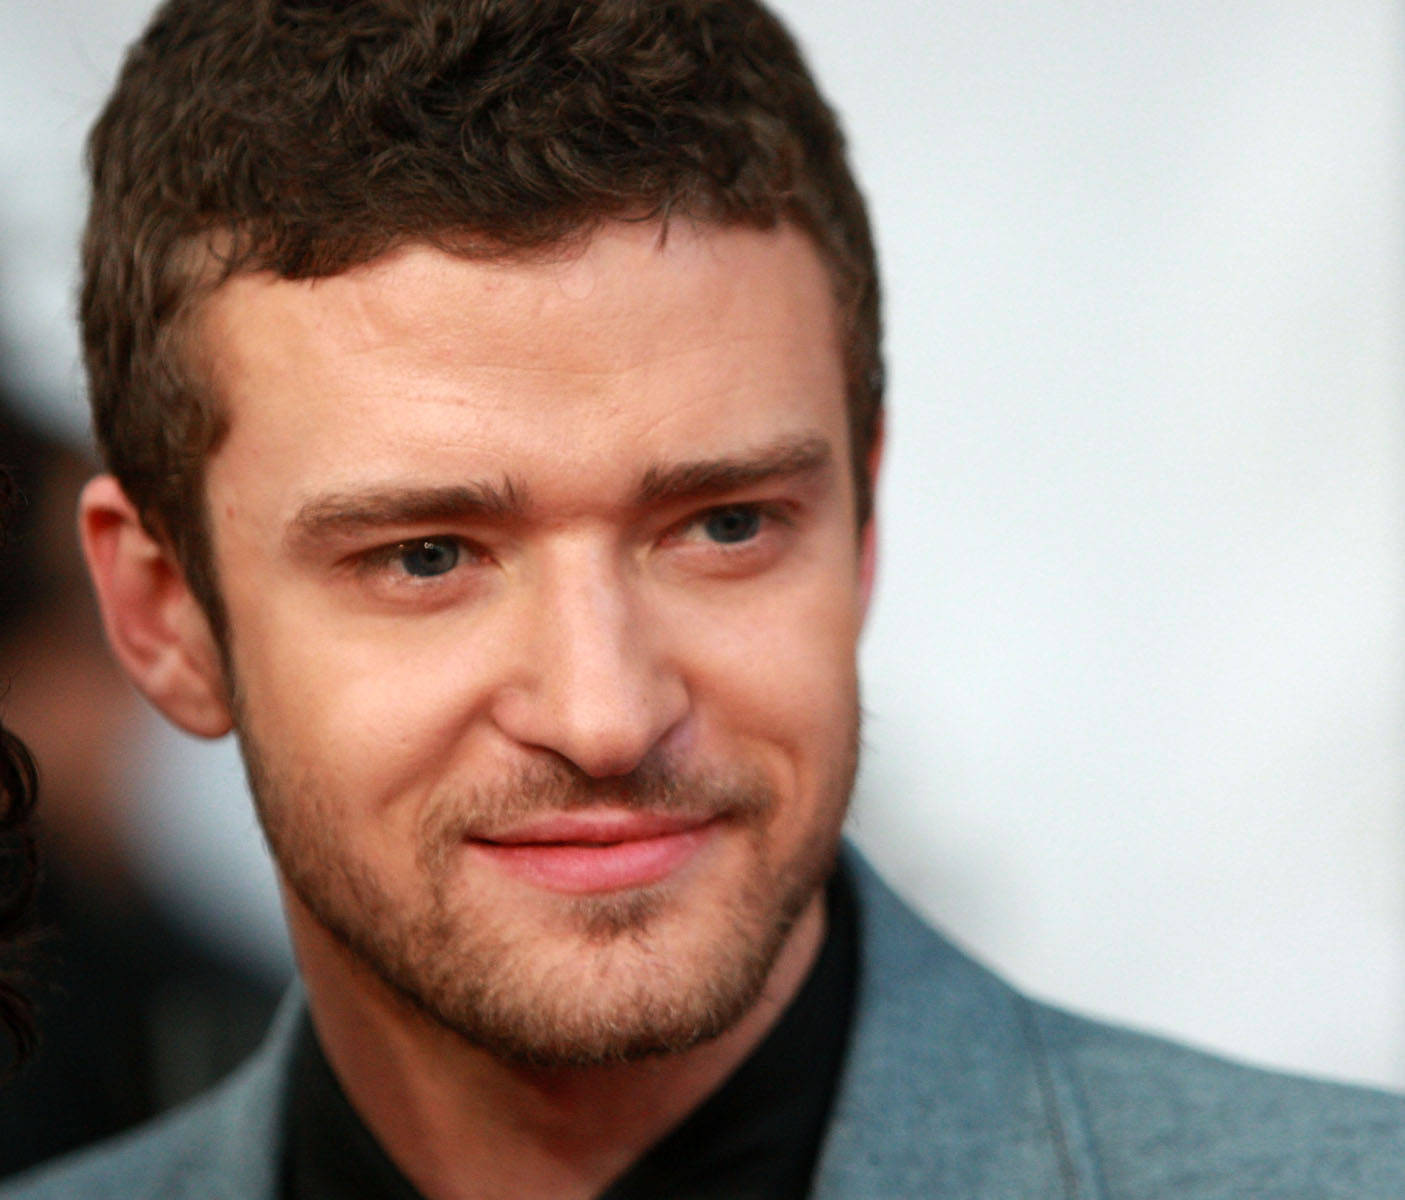 http://4.bp.blogspot.com/-Knjwgh4dxpM/UBWXn-HCAaI/AAAAAAAAFsE/Jf1wJgHHF34/s1600/Facts_on_Justin_Timberlake_Acting_Career.jpg